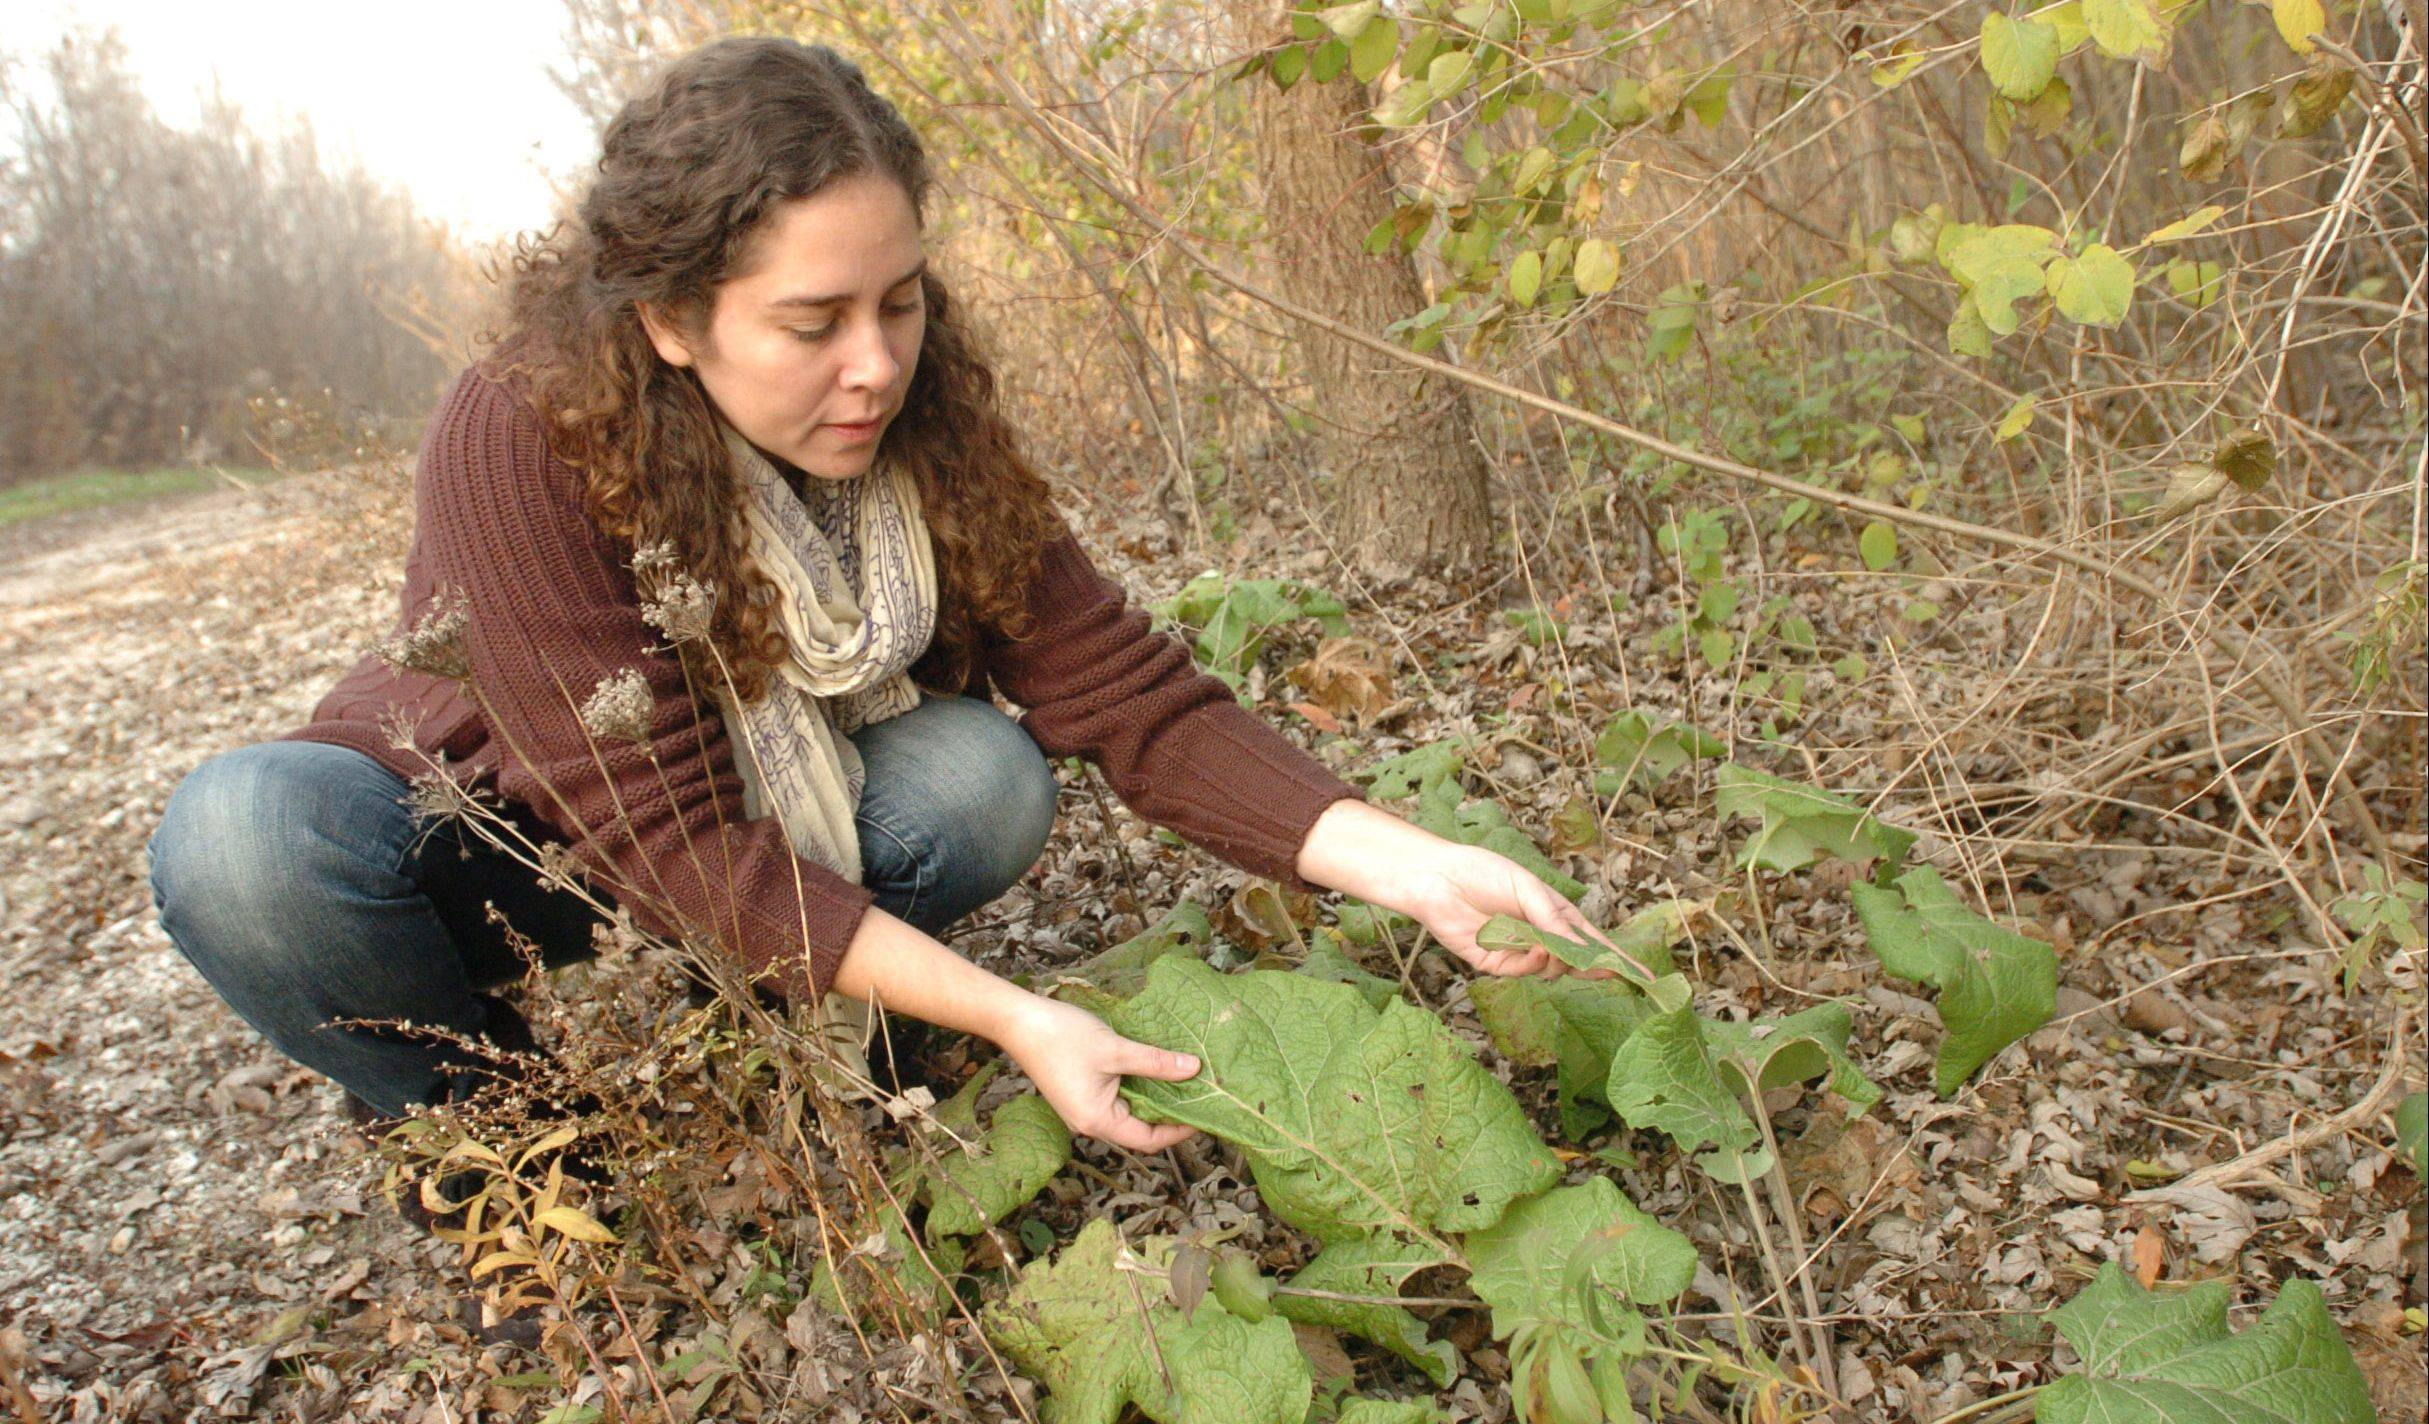 Cote Garceau-Saez of Aurora inspects a Arctium Lappa in a local wooded area. For her home remedies she collects much of what she needs from privately owned lands. She has been in business for 10 years.